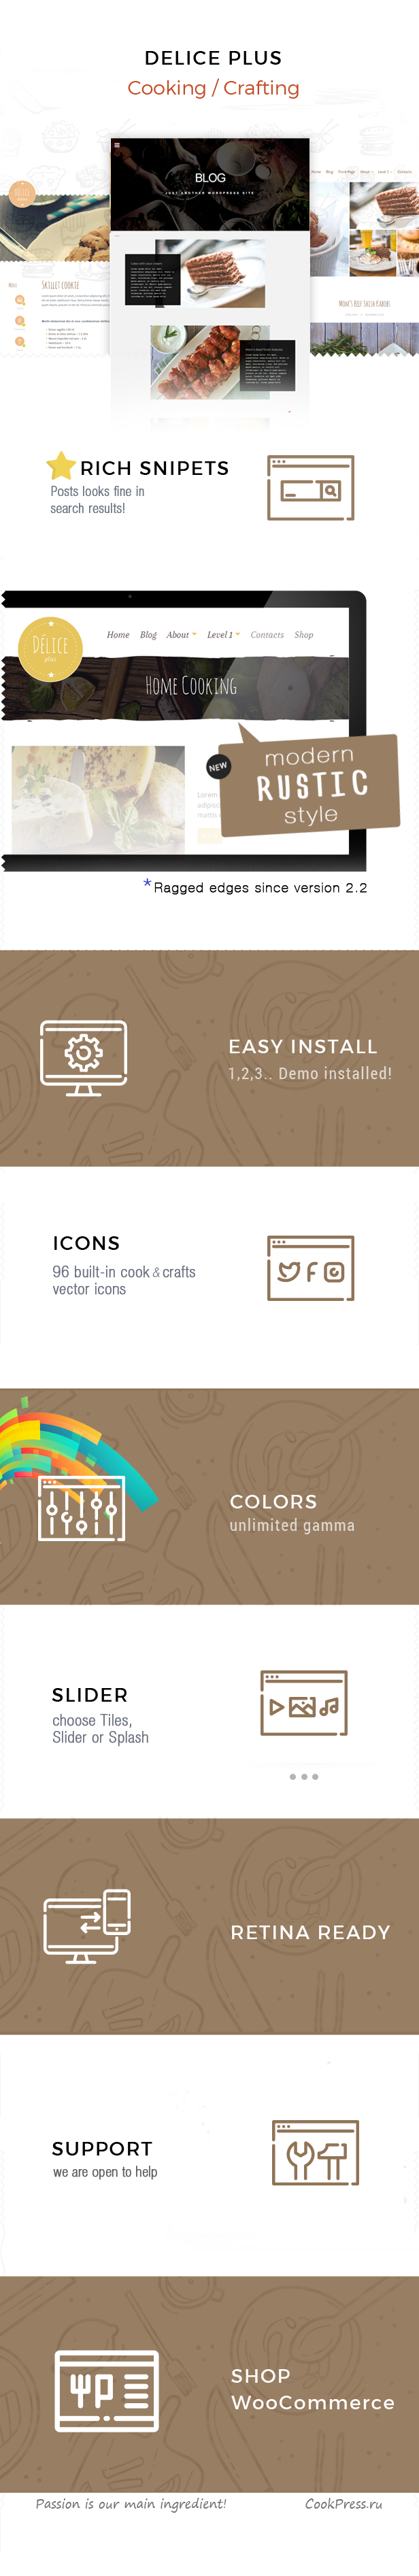 Delice Plus Cooking or Crafting WP Theme • by CookPress - 1